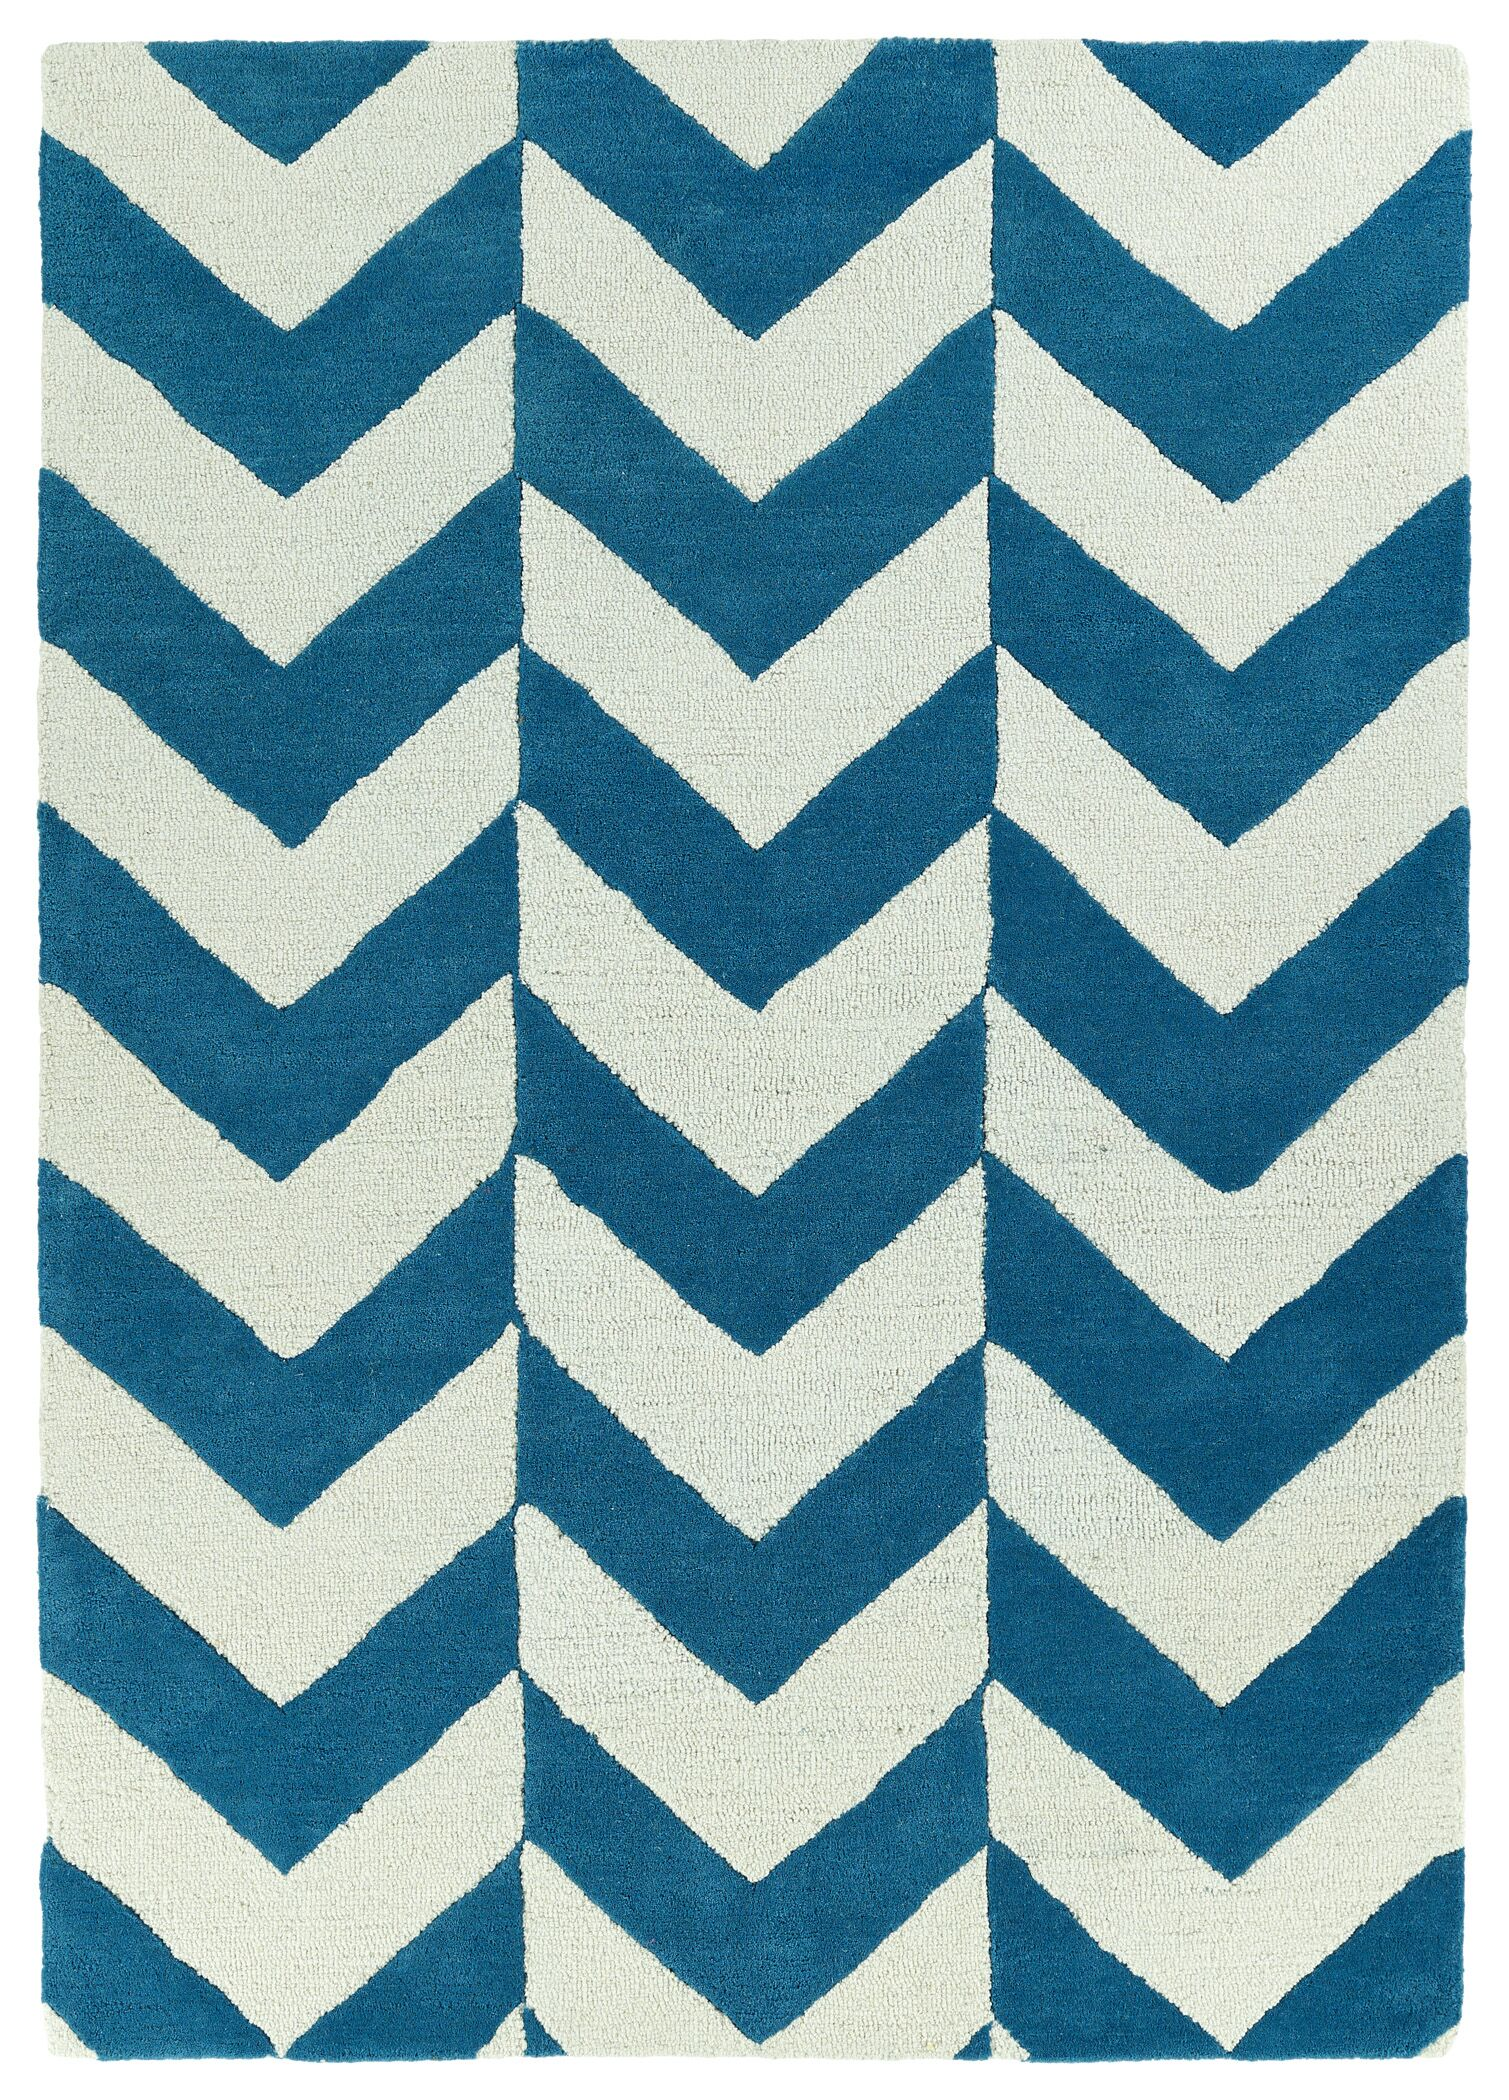 Thurlow Area Rug Rug Size: Rectangle 8' x 10'